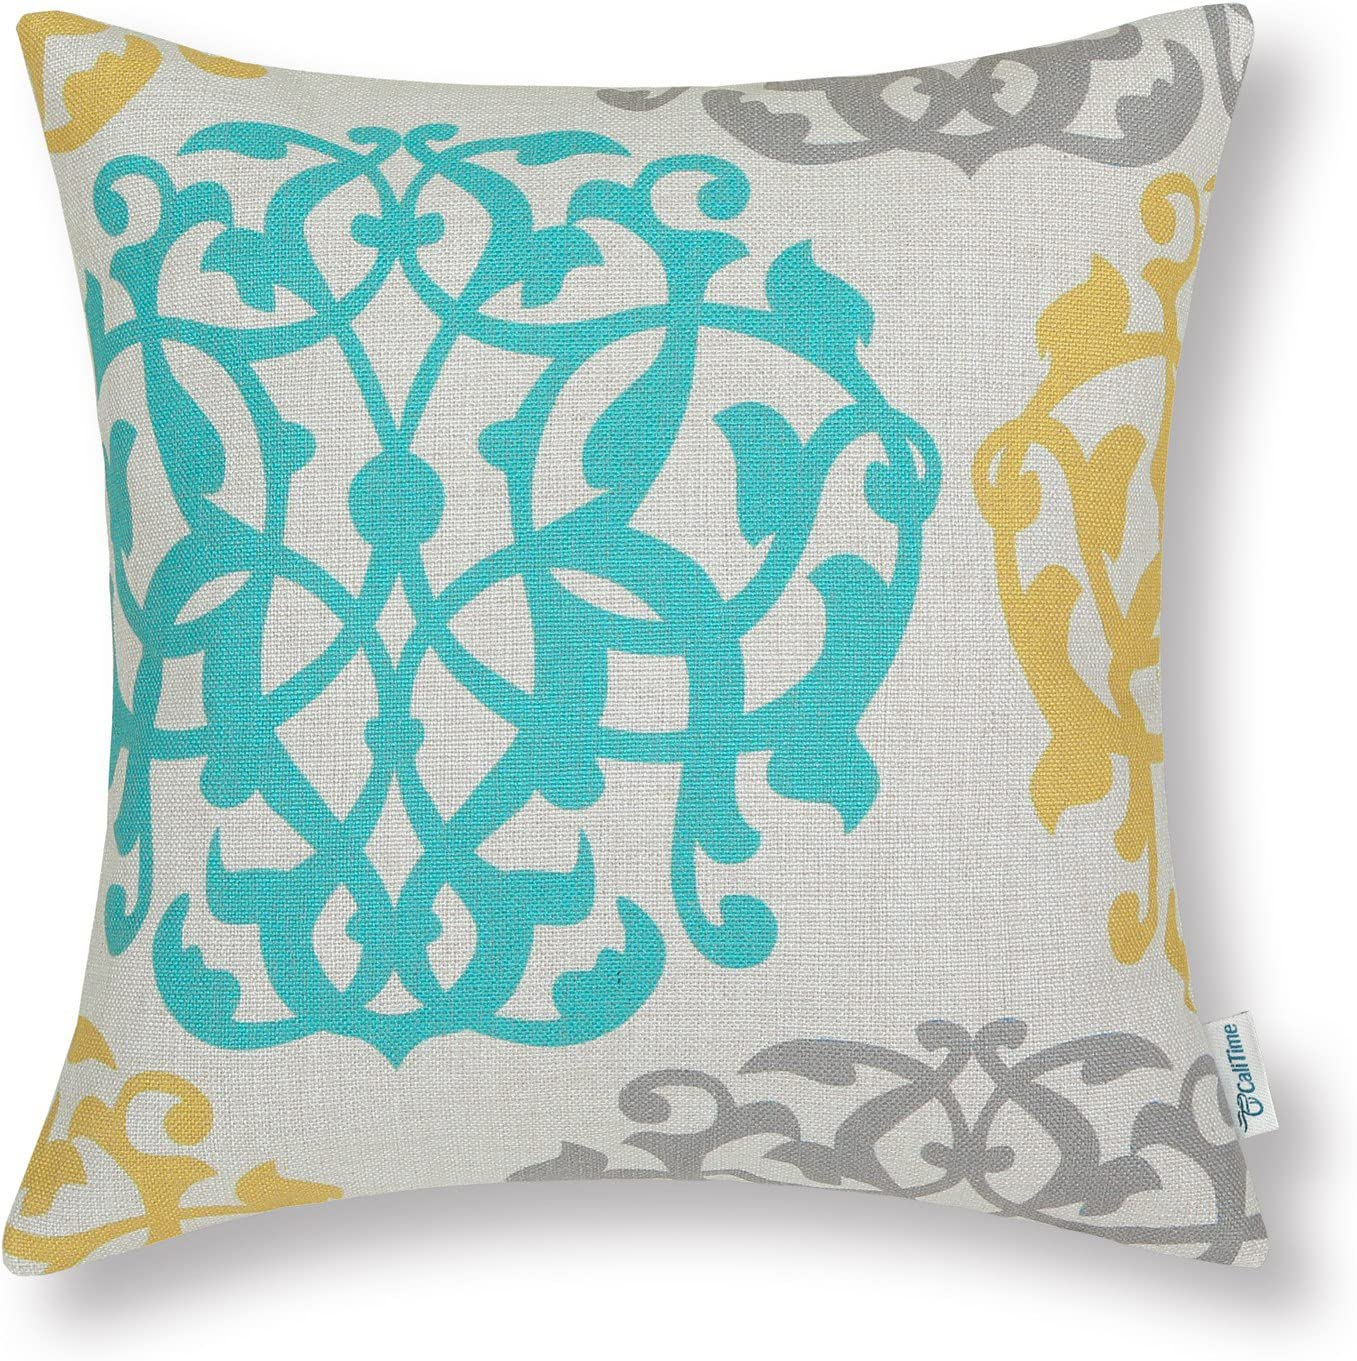 CaliTime Canvas Throw Pillow Cover Case for Couch Sofa Home Decoration Three-Tone Floral Compass Geometric 20 X 20 Inches Turquoise/Yellow/Gray